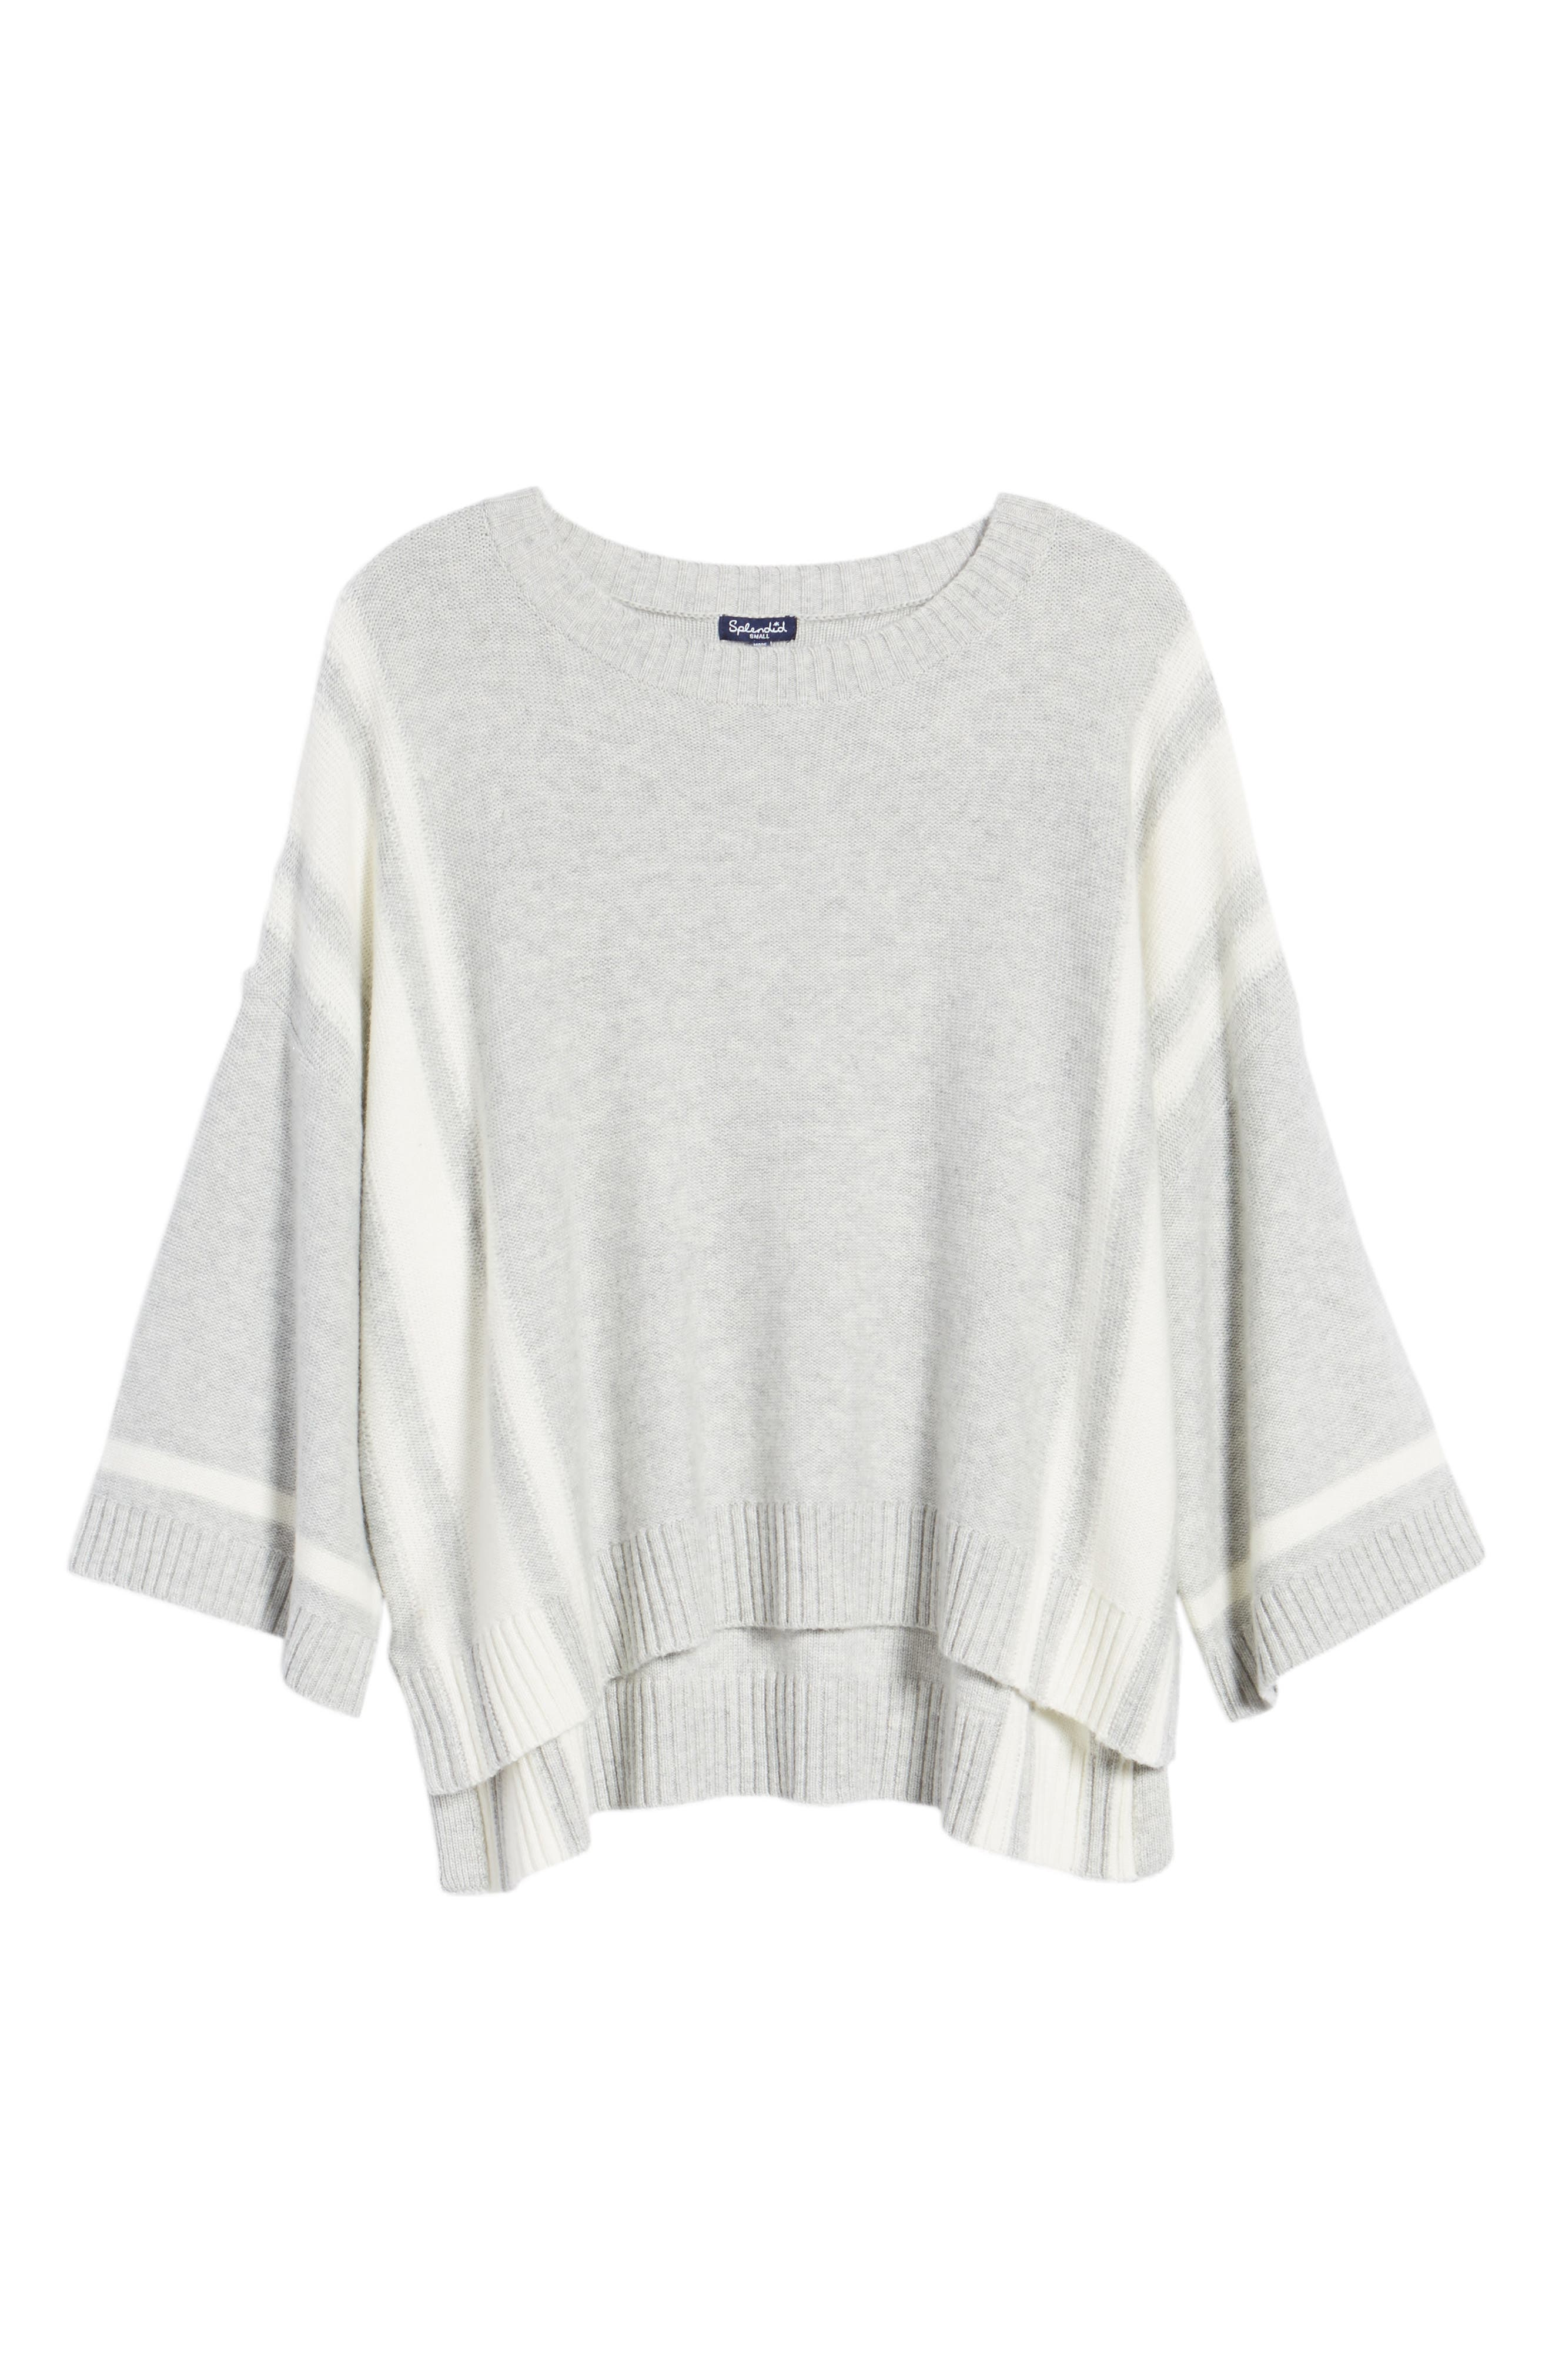 Bell Sleeve Sweater,                             Alternate thumbnail 7, color,                             Grey